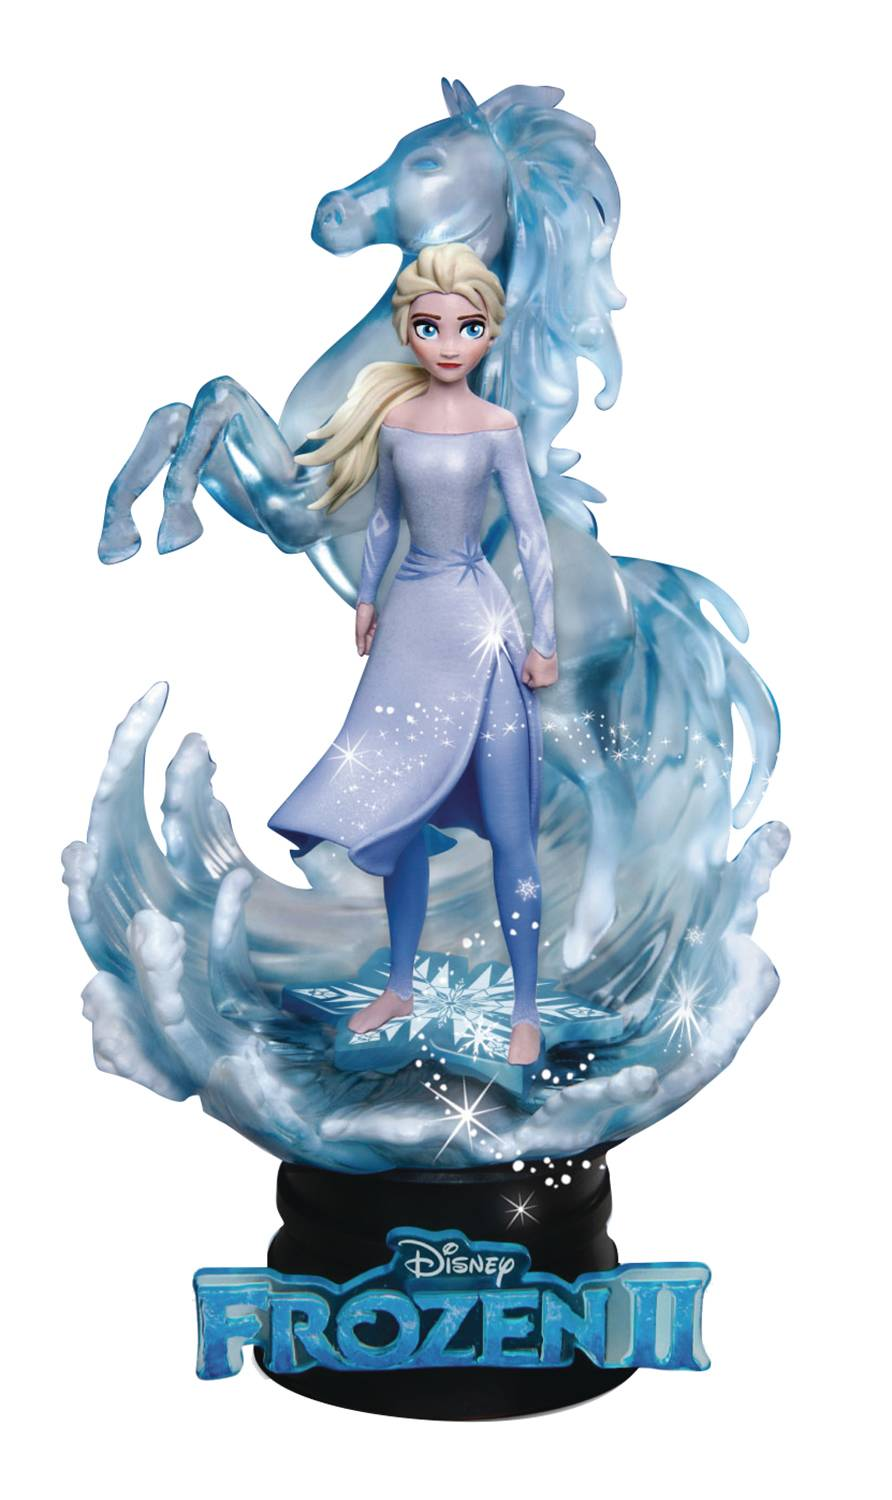 DISNEY FROZEN II ELSA DS-038 D-STAGE SER PX 6IN STATUE